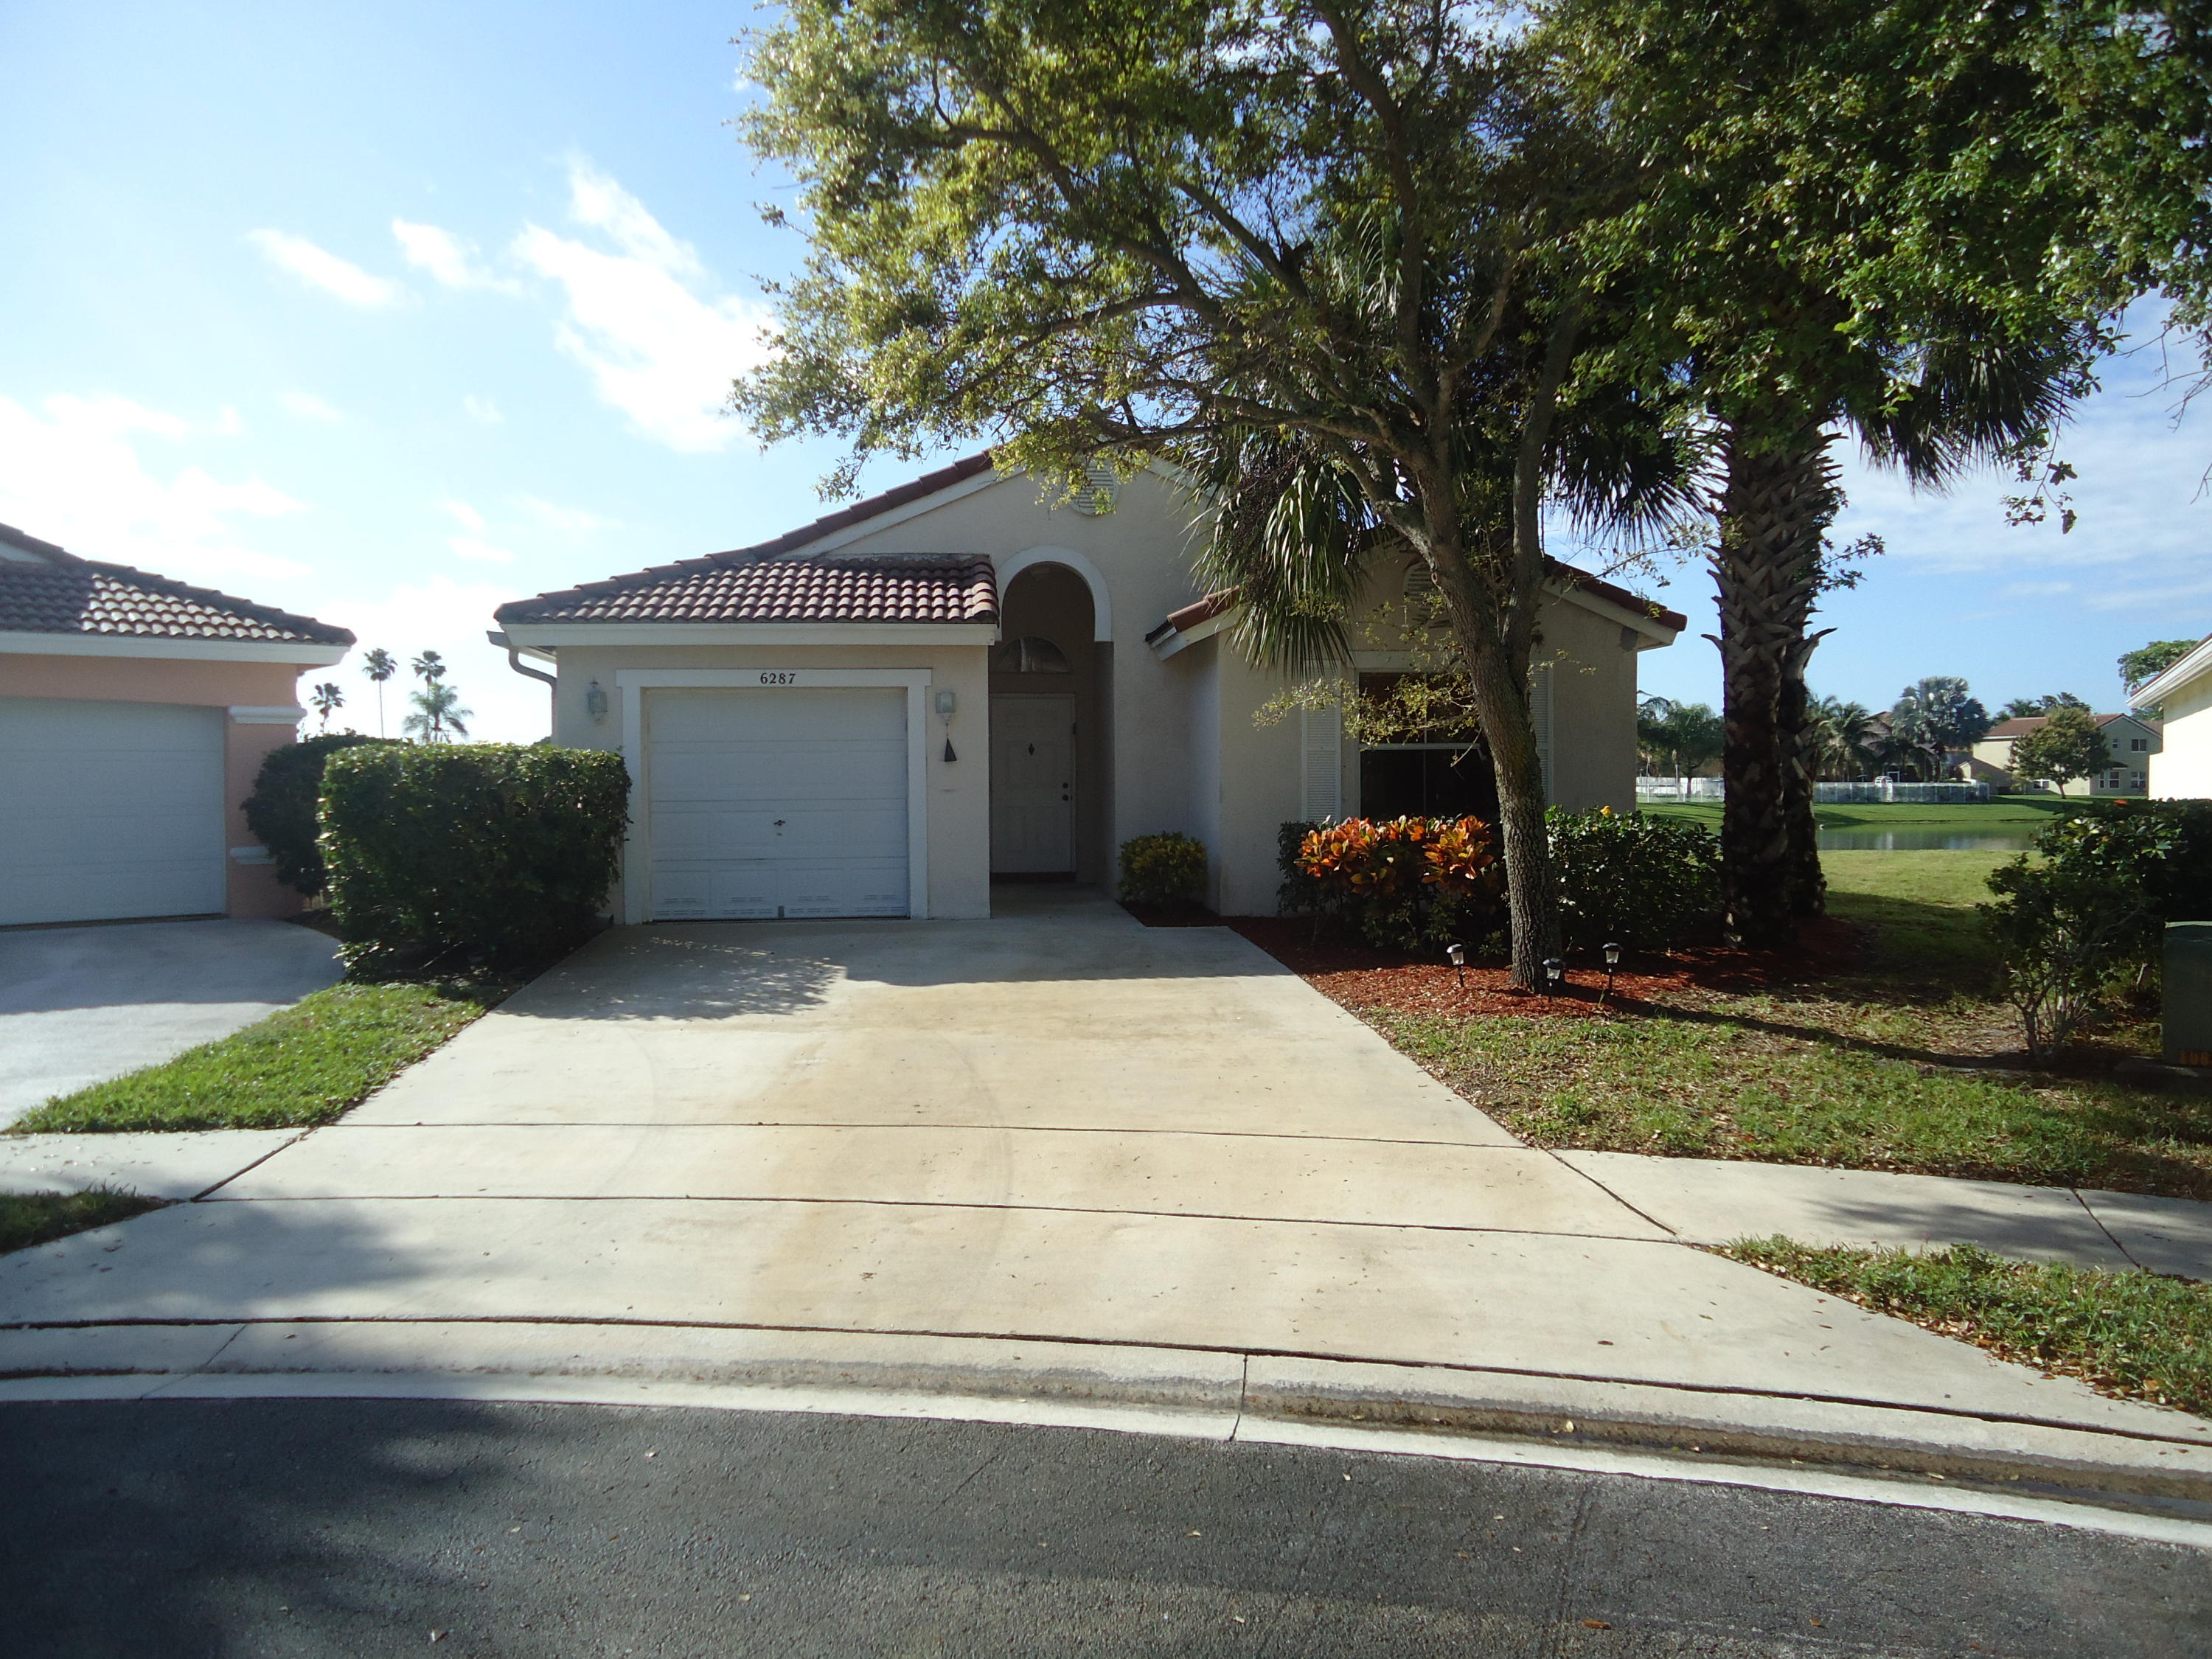 Home for sale in Lacuna, Atlantic National Lake Worth Florida